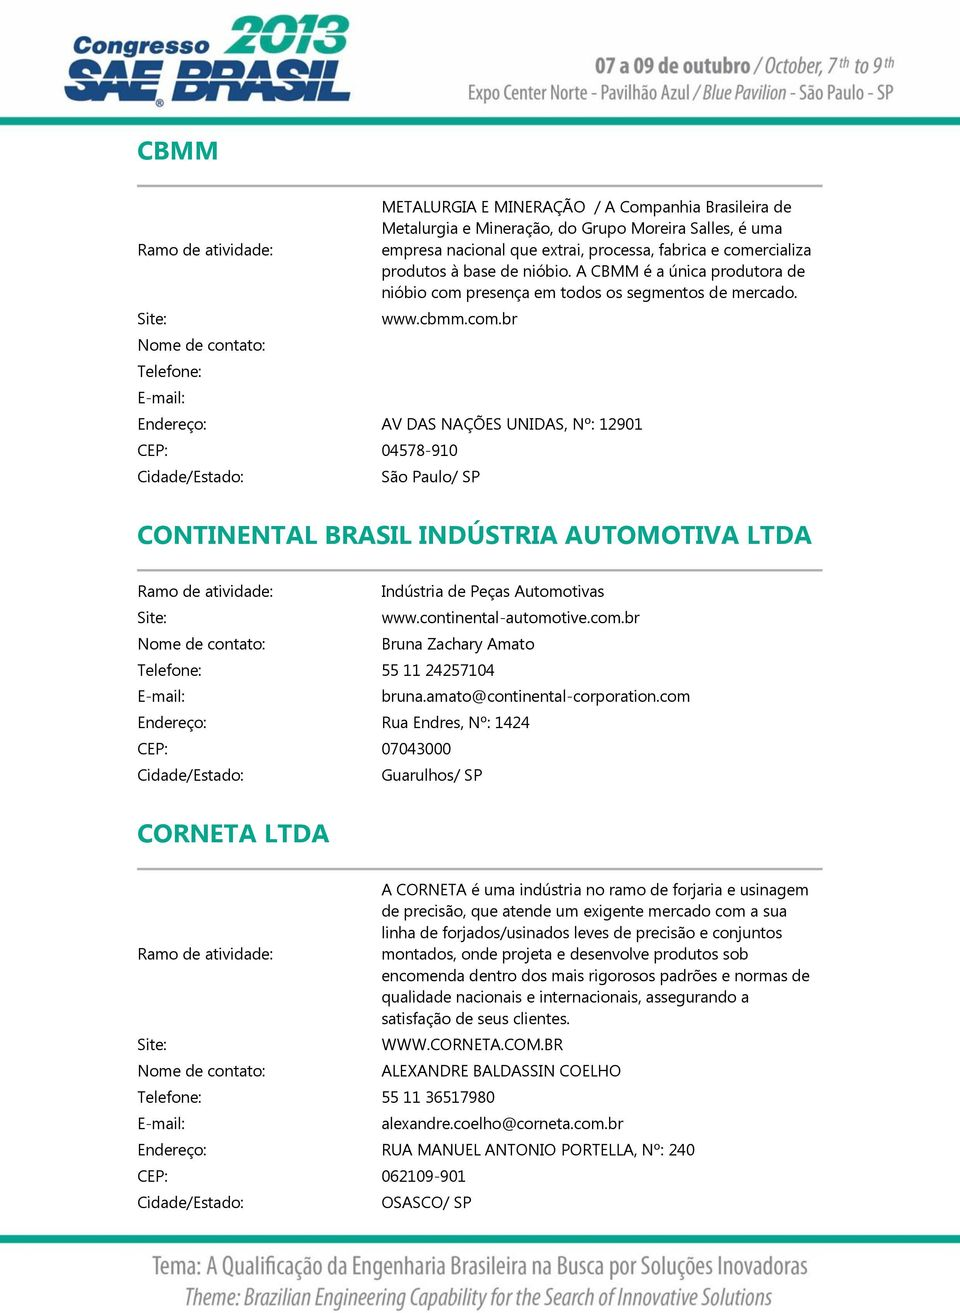 continental-automotive.com.br Bruna Zachary Amato Telefone: 55 11 24257104 bruna.amato@continental-corporation.